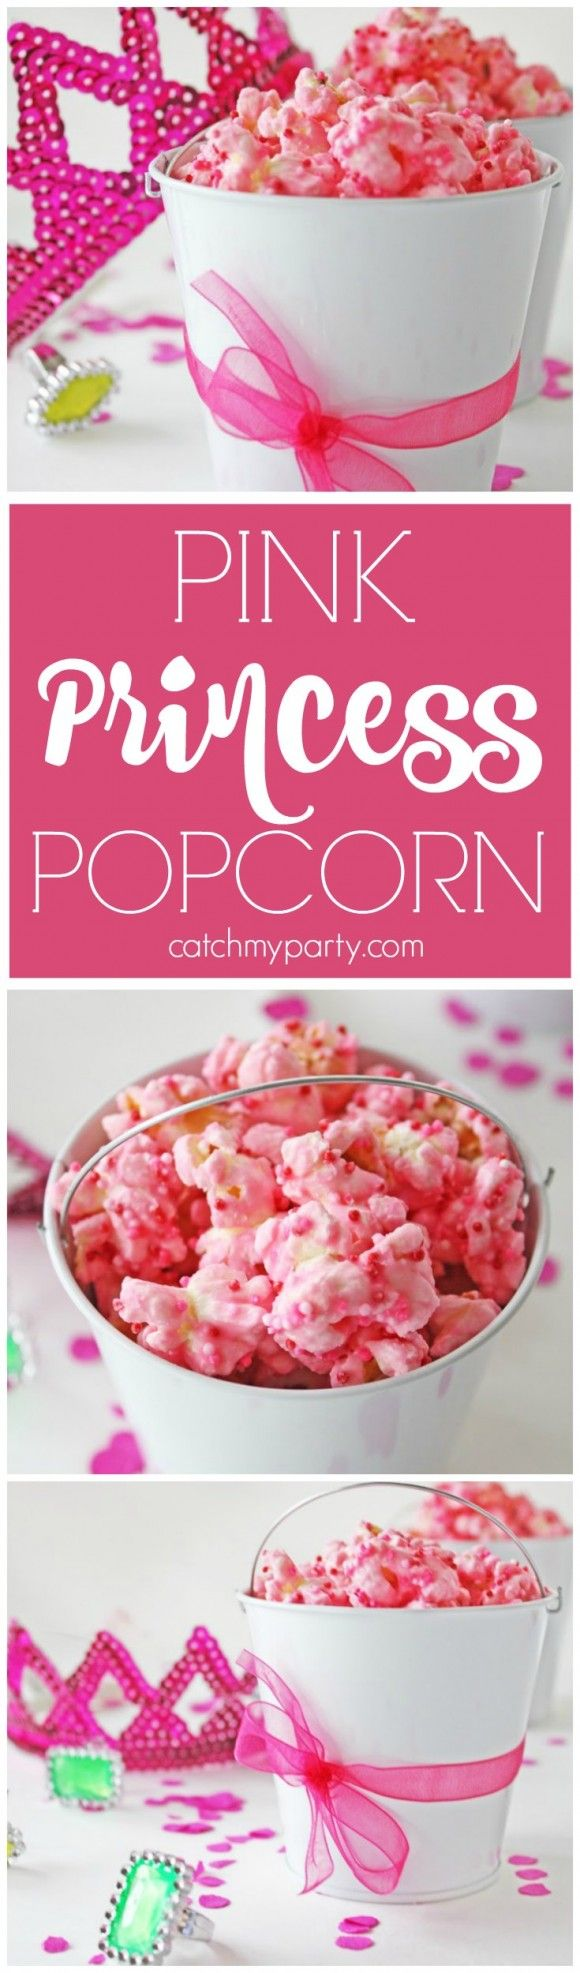 Easy budget-friendly pink princess popcorn treat. This is a great birthday party dessert, looks great on a dessert table, and you can customize the color to match your party! | CatchMyParty.com